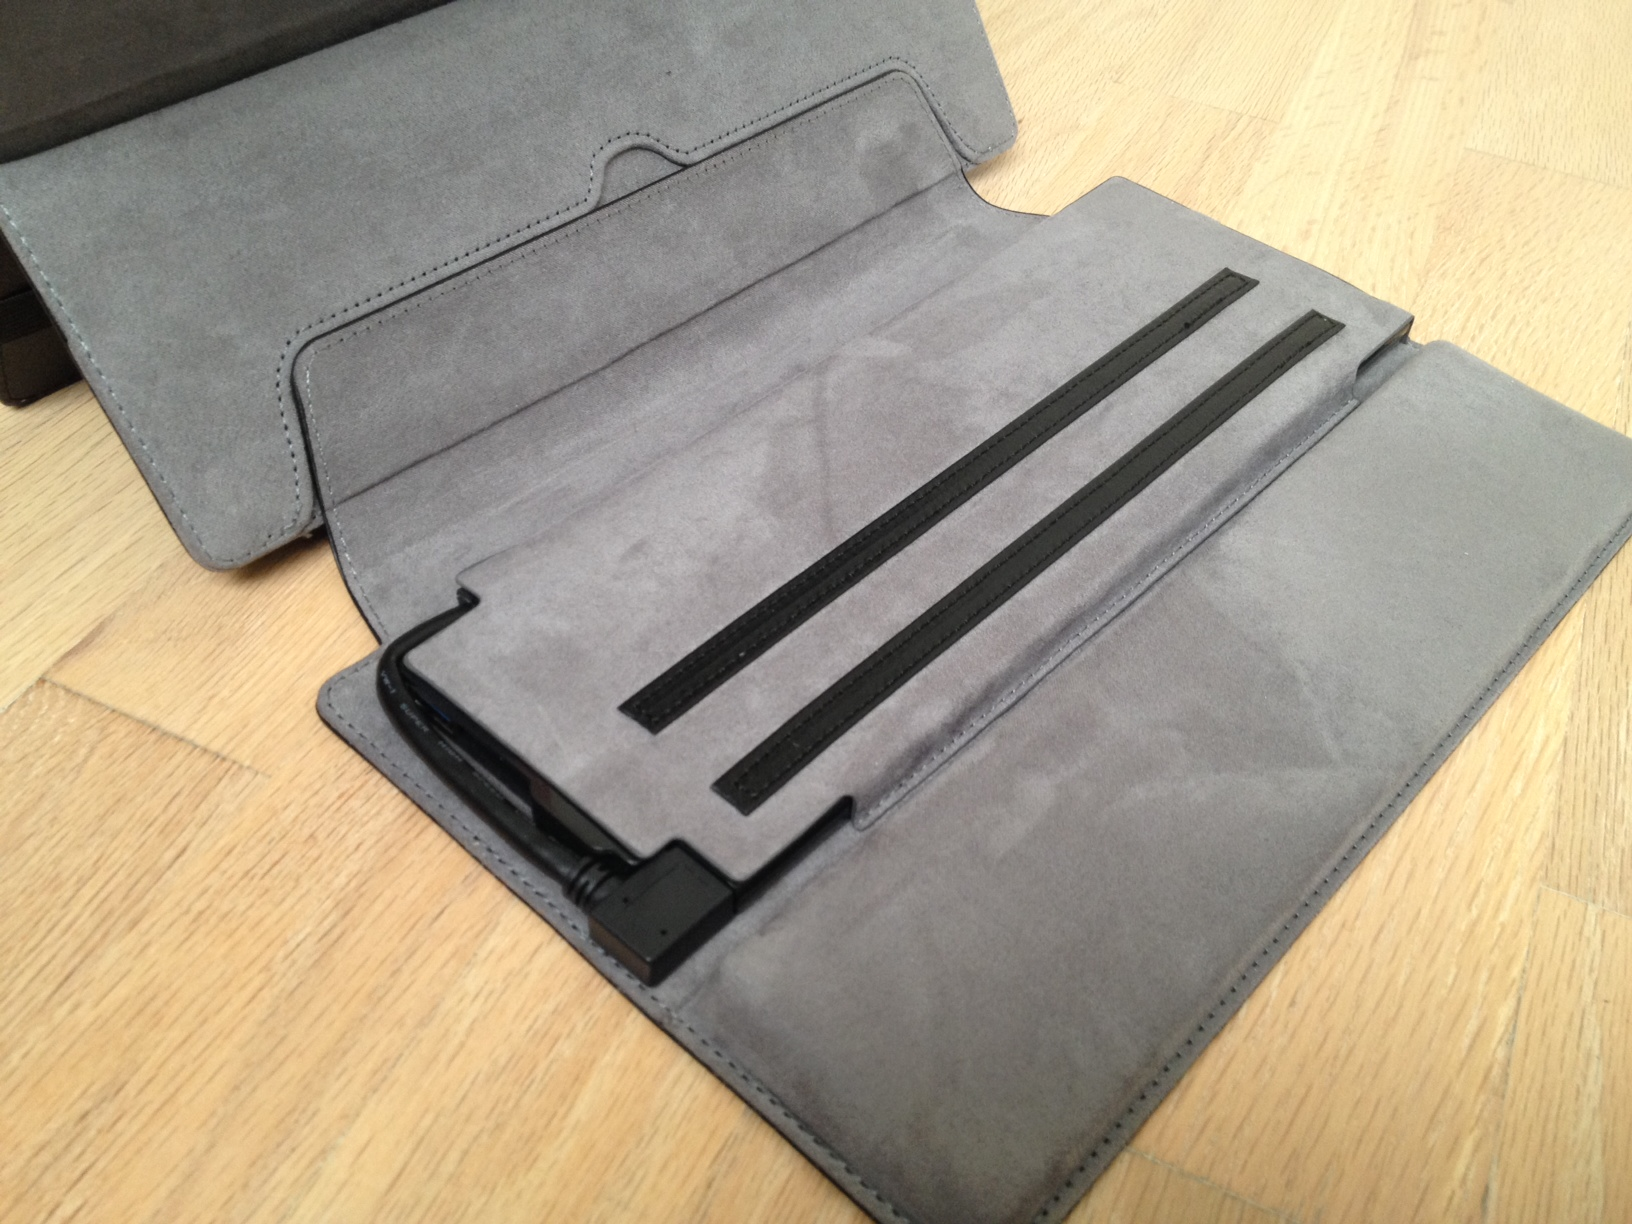 The dock cover sacrifices one of the stopping strips for a padded palm rest. When it's not connected to the Surface Pro, the connector cable on the left side of the dock cover is tucked safely out of the way. Pulling the cable out of its housing can take some effort.